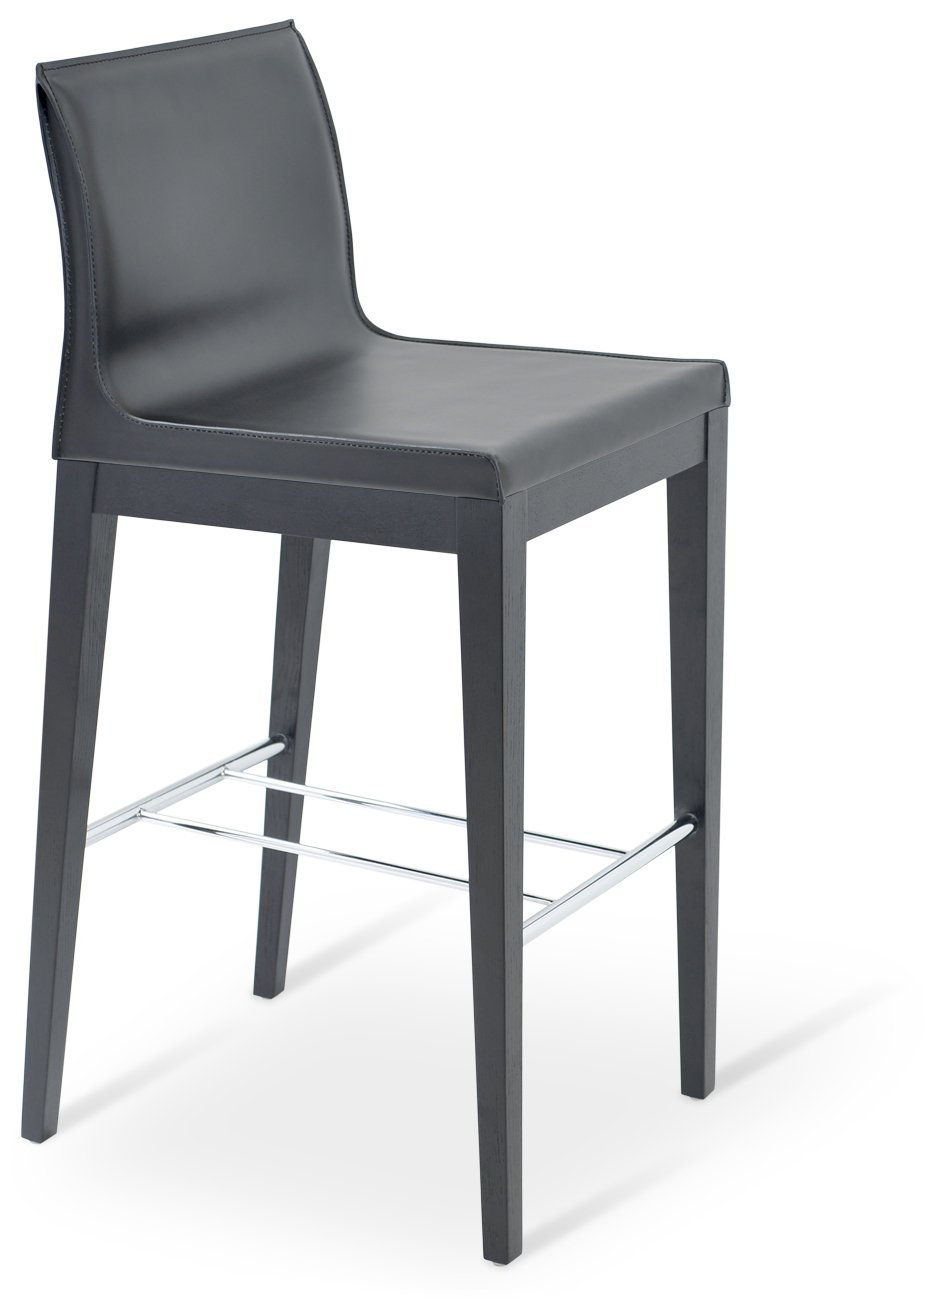 Soho Concept PoloW-SBW-DGBL Polo Wood Stools with Solid Beech Walnut Base, Dark Gray Bonded Leather